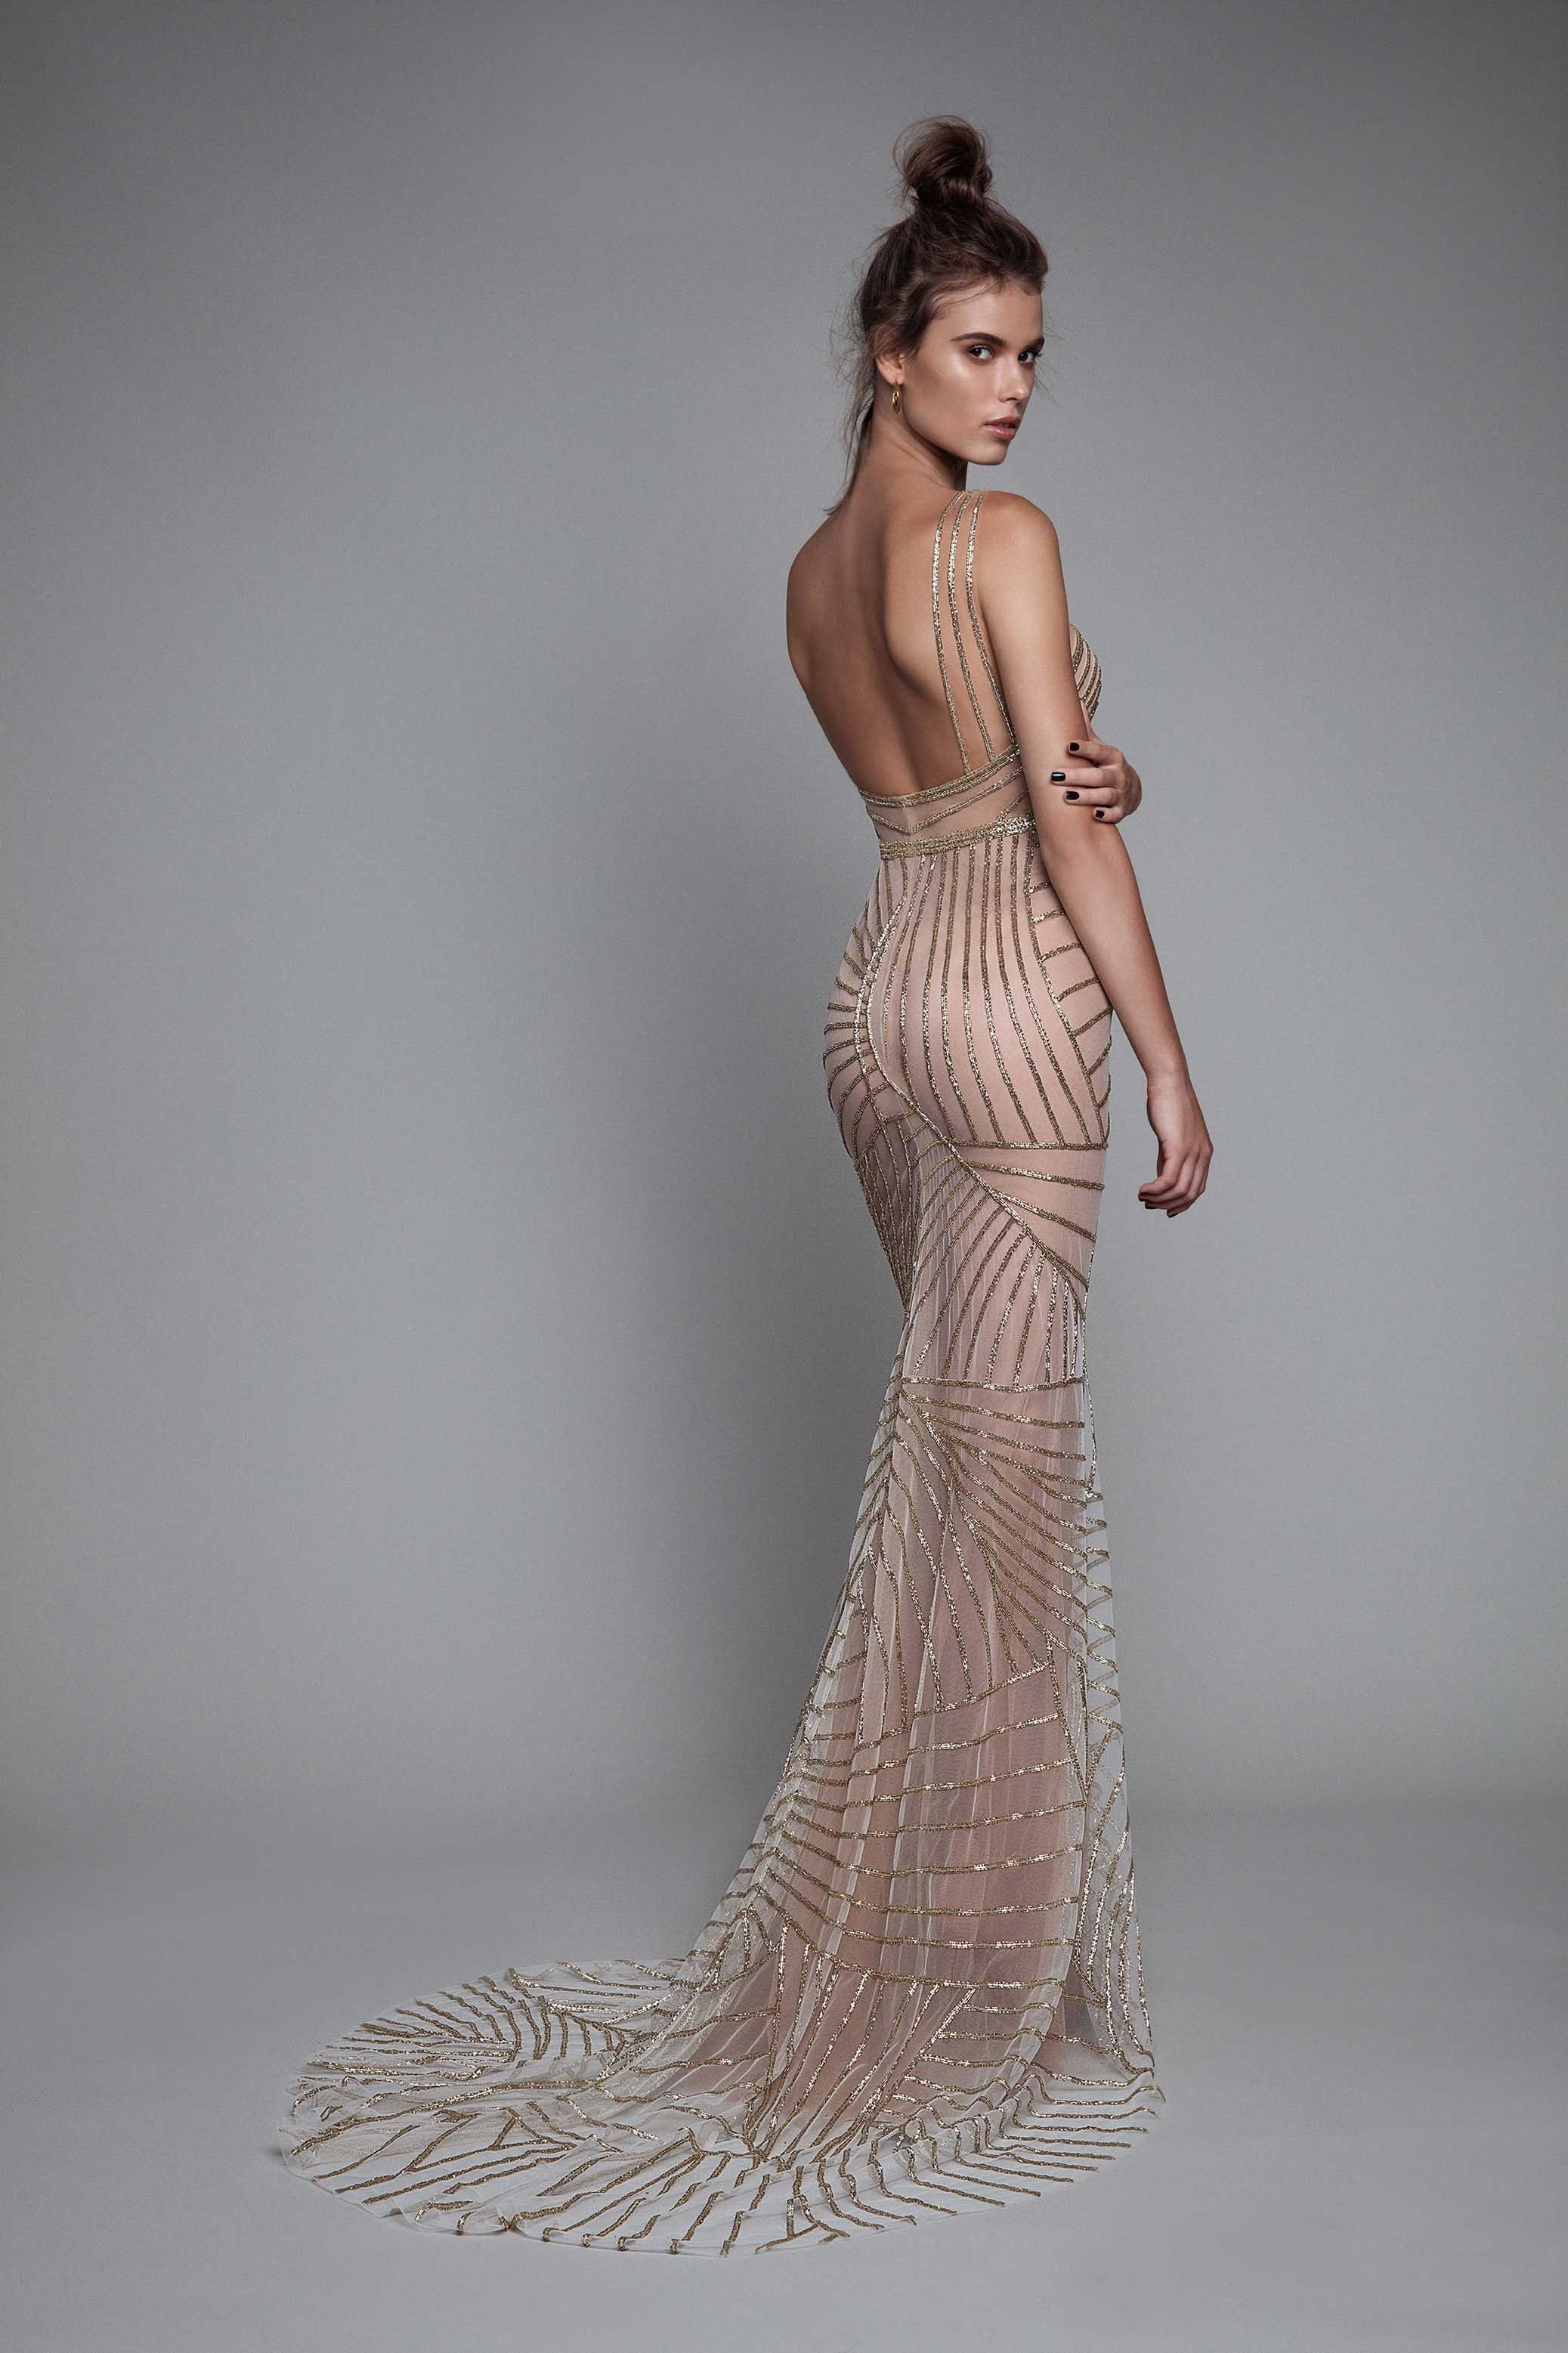 Backless gold and beige evening dress (Fall Winter 2017 Collection from  Berta) 5f3357aa03fc